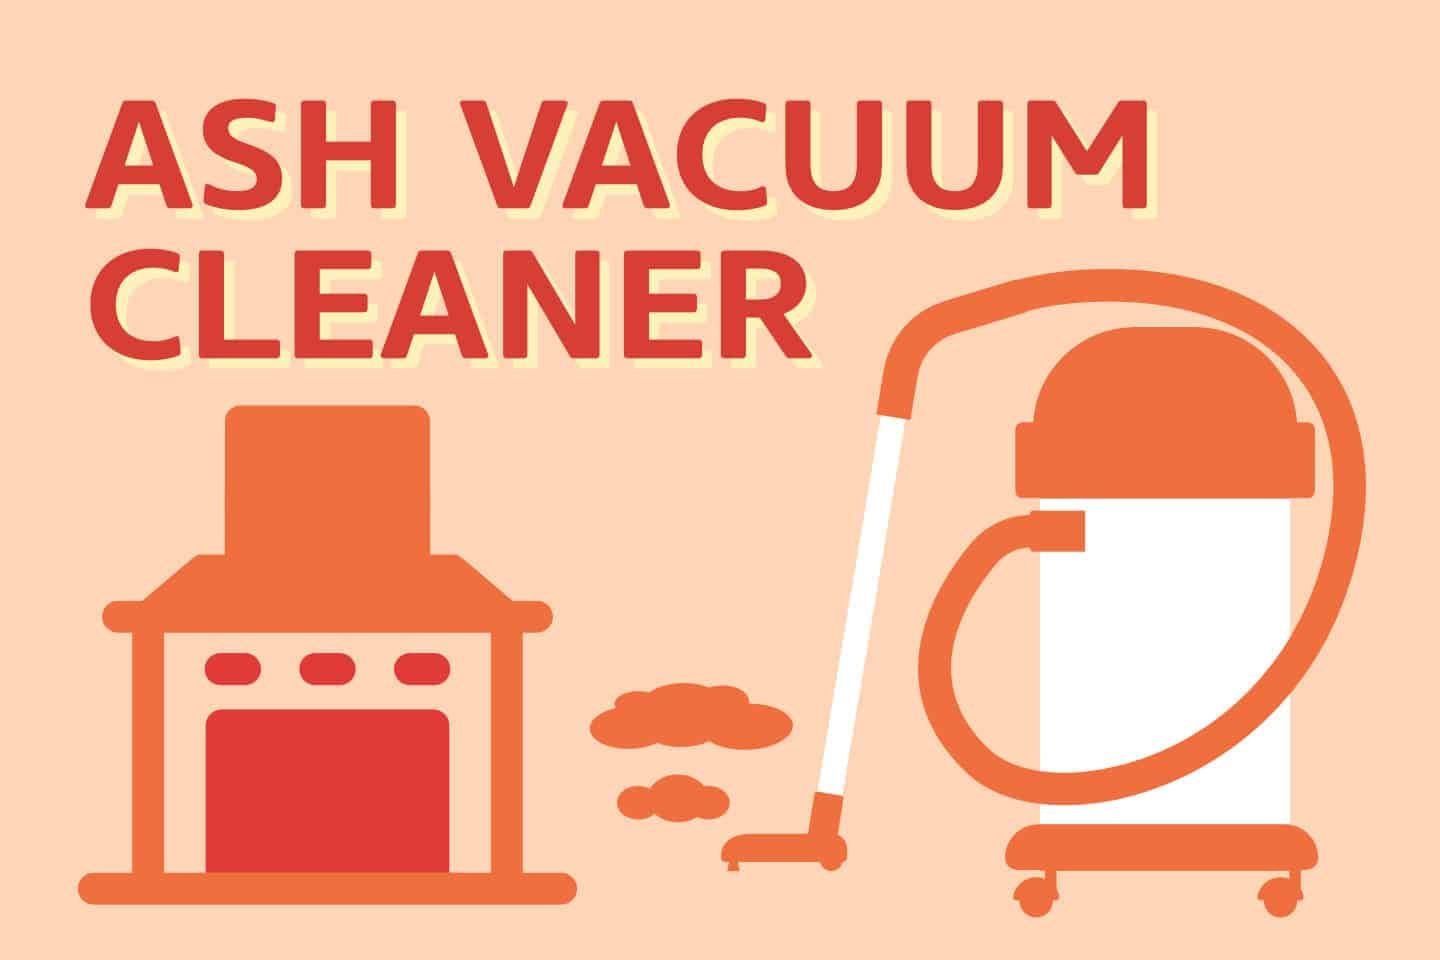 Best Ash Vacuum Cleaners – How To Chose The RIGHT One?